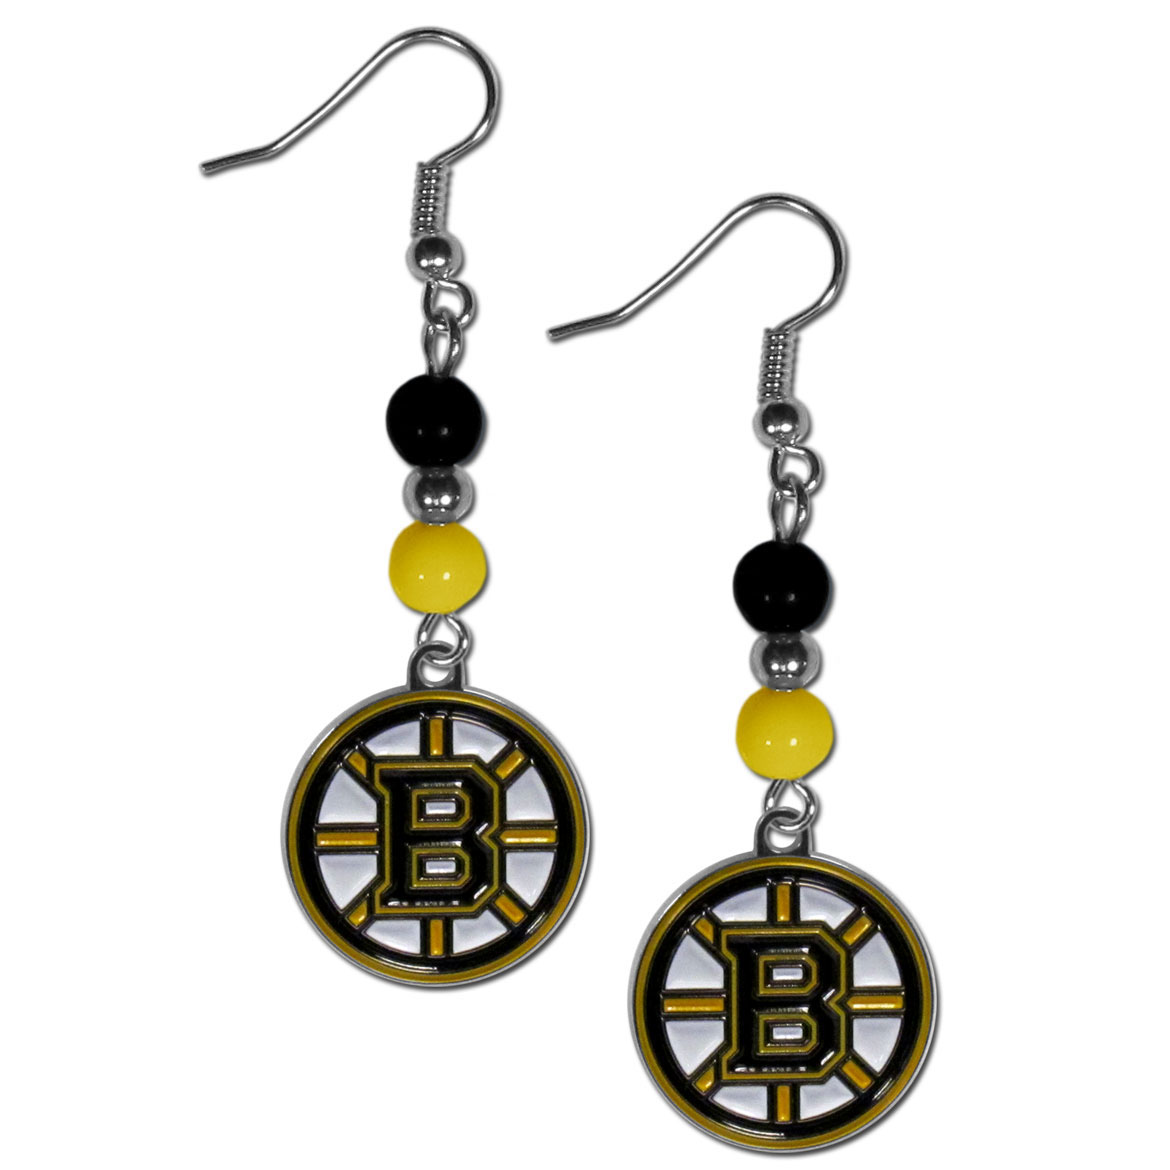 Boston Bruins® Fan Bead Dangle Earrings - Love your team, show it off with our Boston Bruins® bead dangle earrings! These super cute earrings hang approximately 2 inches and features 2 team colored beads and a high polish team charm. A must have for game day!